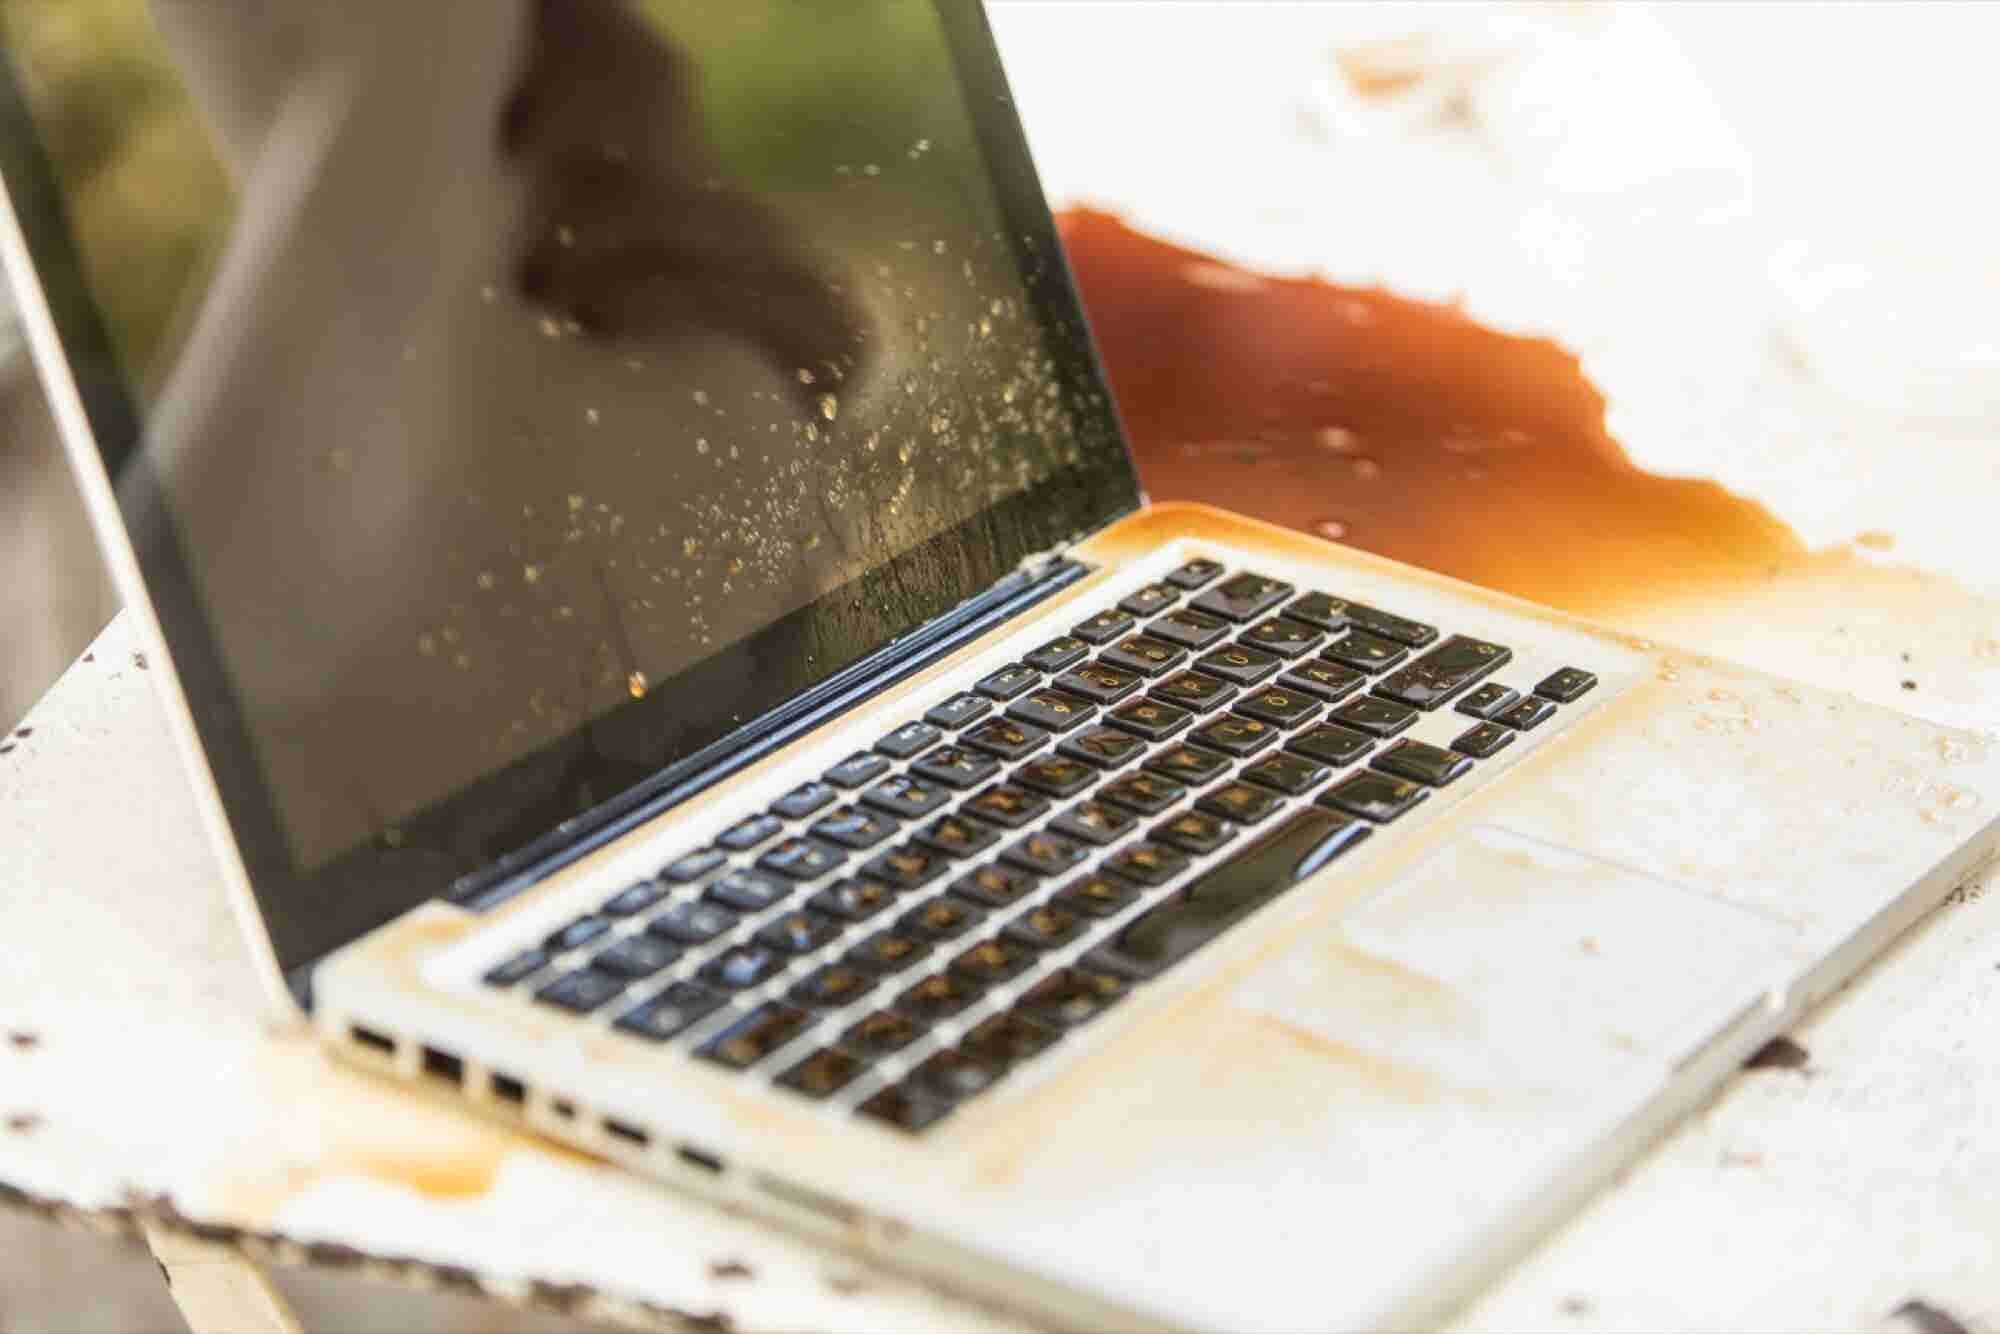 3 Common Types of Data Loss -- and How to Prevent Them